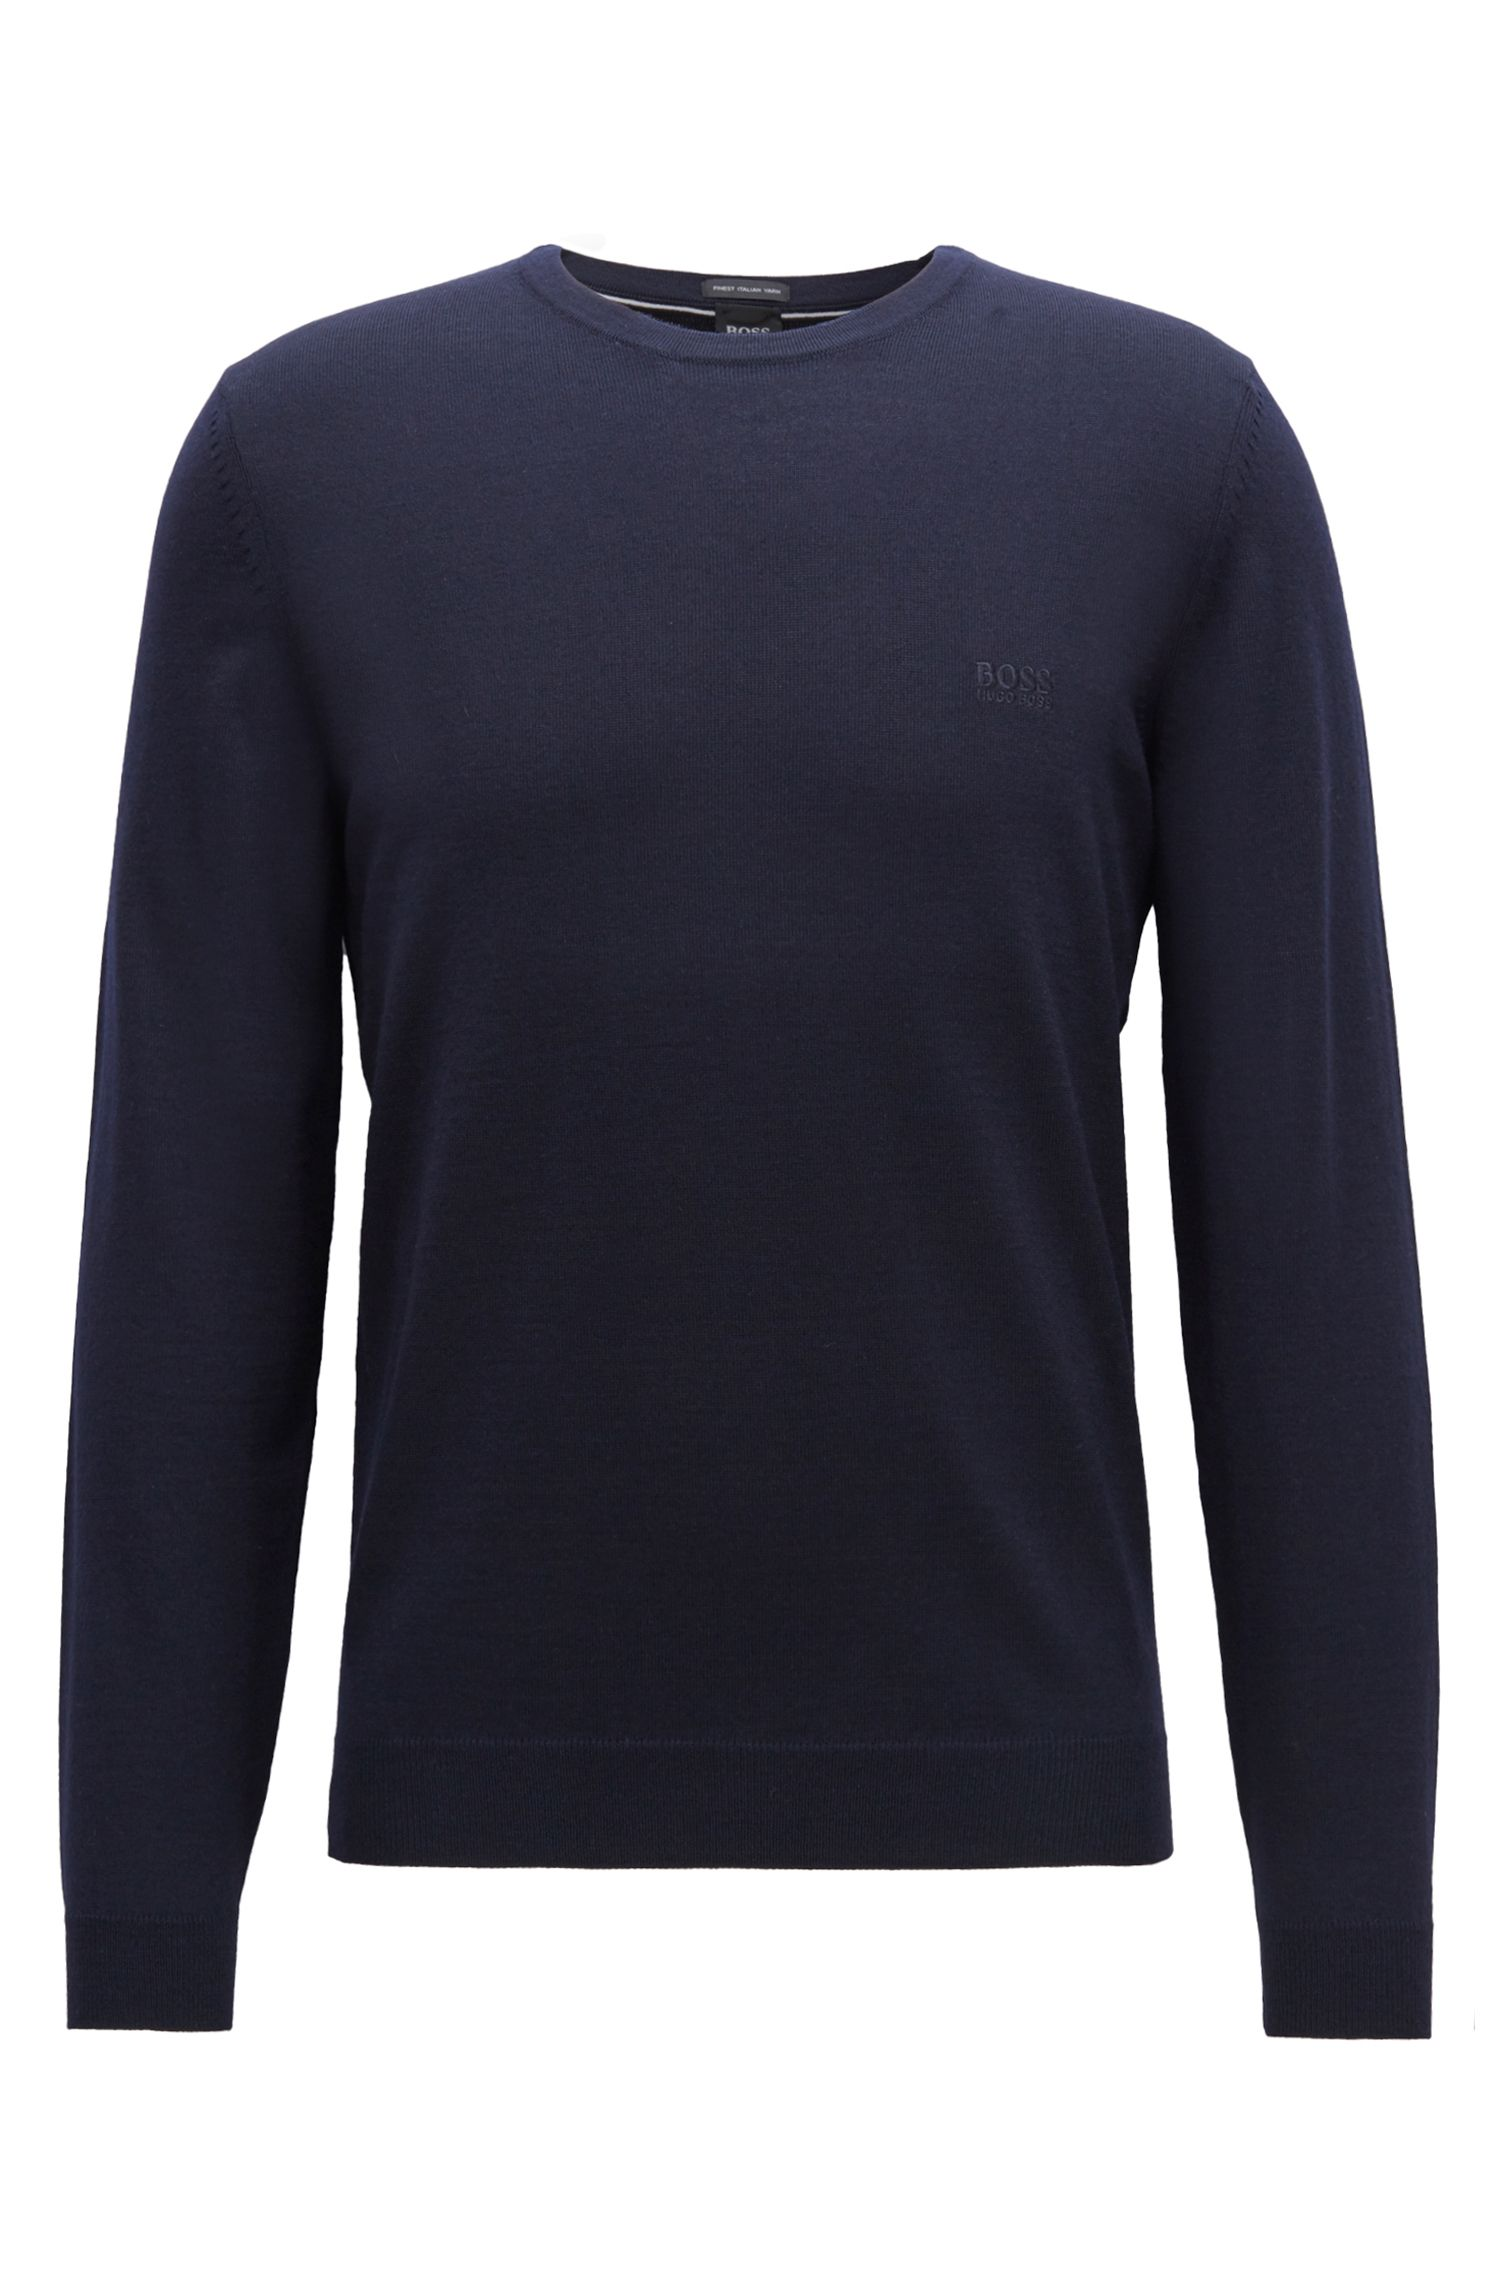 Crew-neck sweater in virgin wool jersey